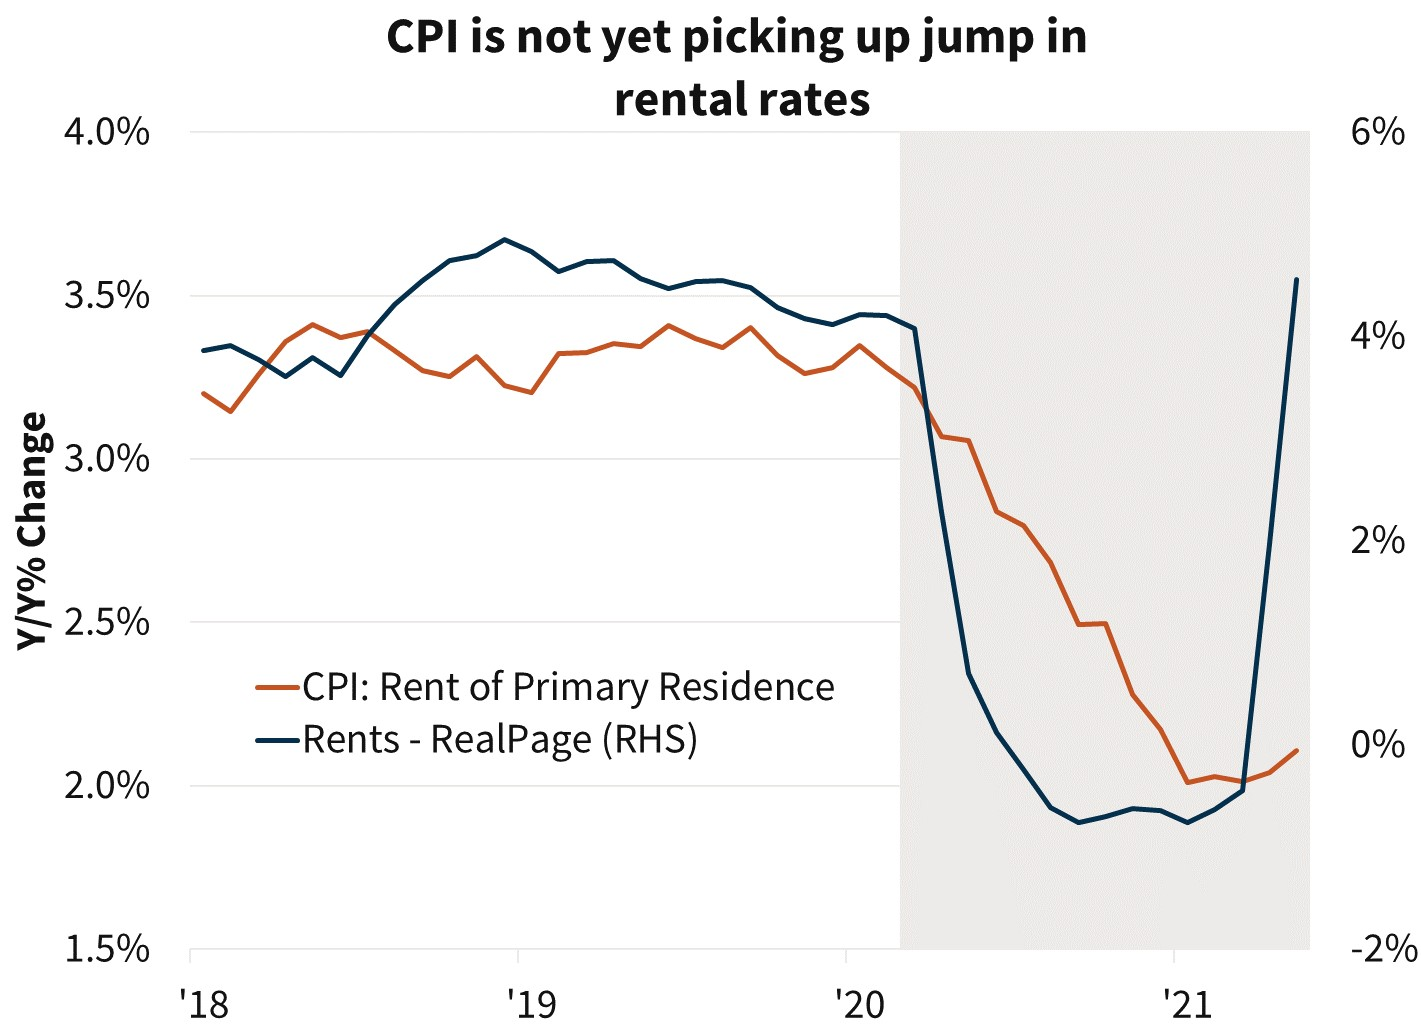 CPI is not yet picking up jump in rental rates